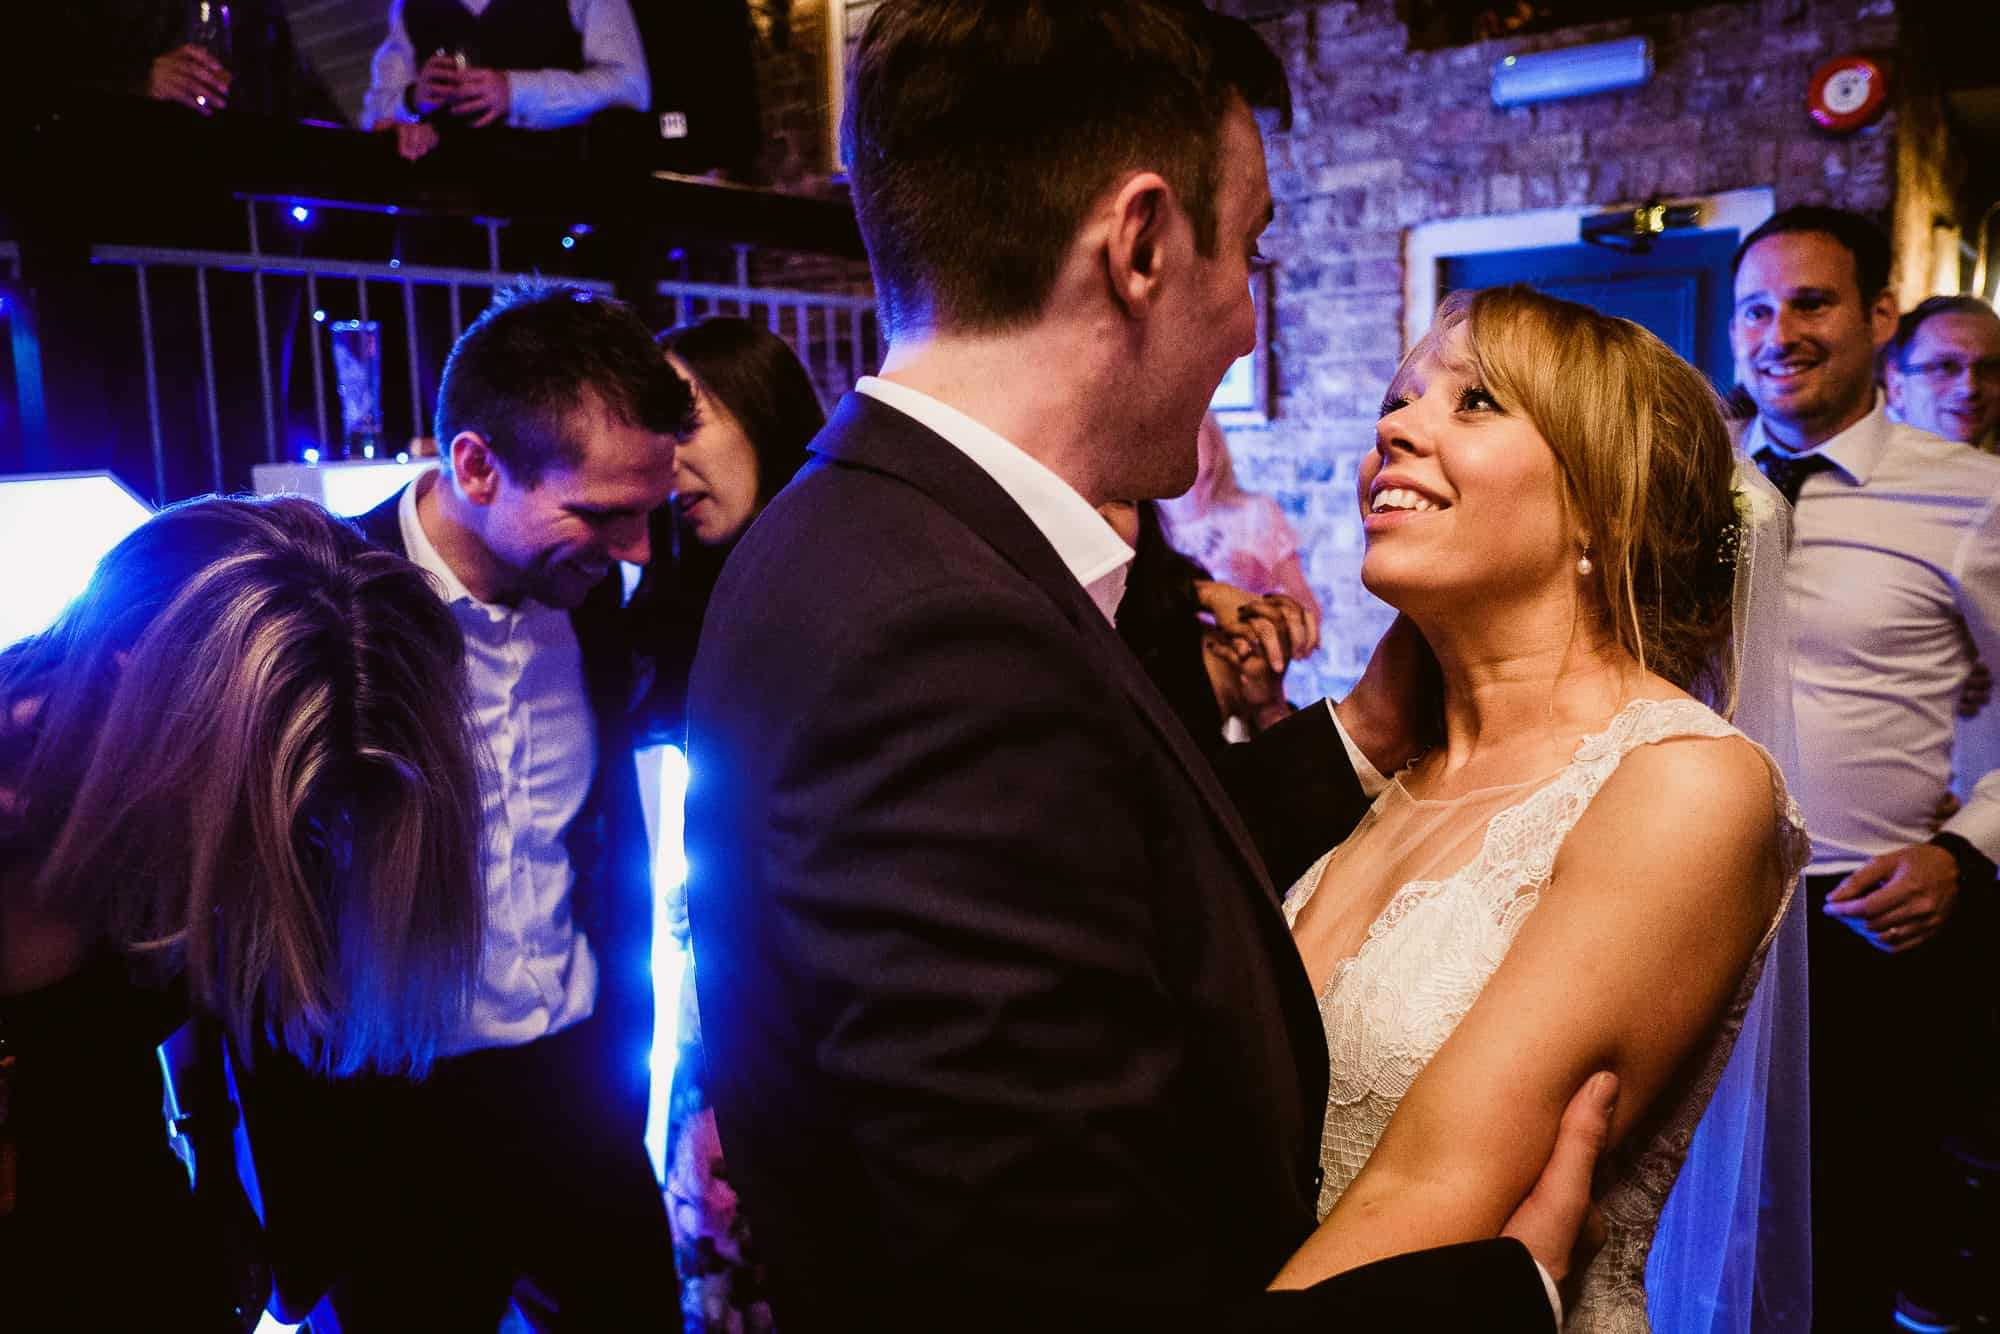 bethnal-green-town-hall-hotel-wedding-photography-0092